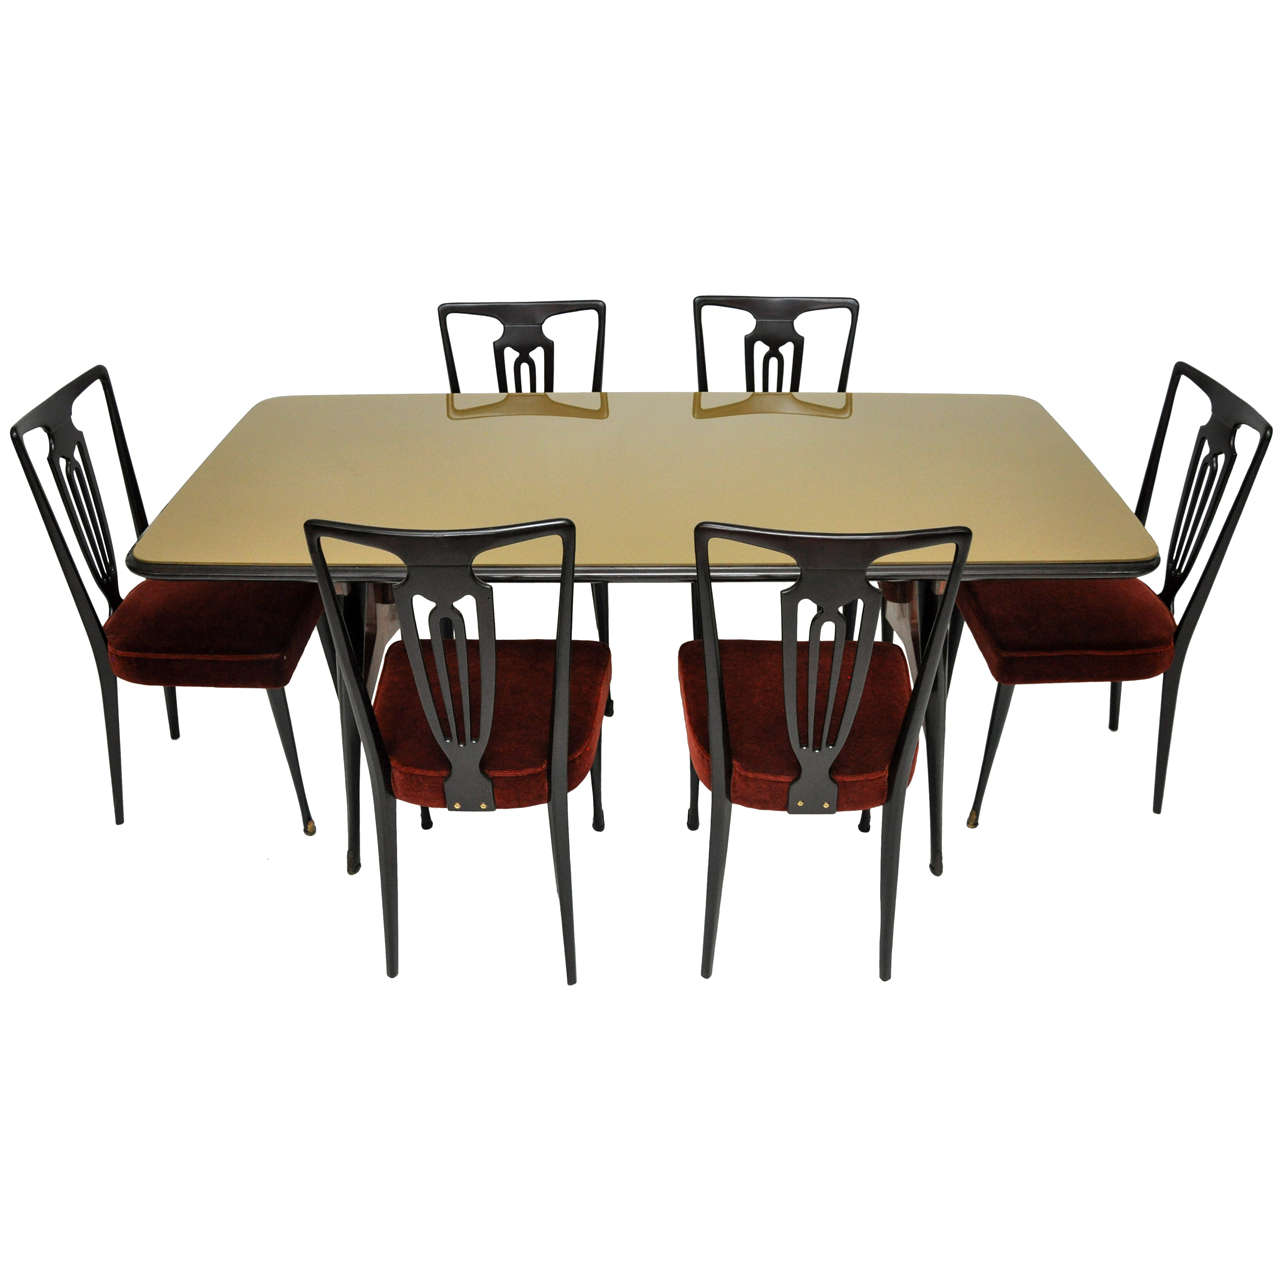 Italian modern dining set at 1stdibs for Contemporary dining set